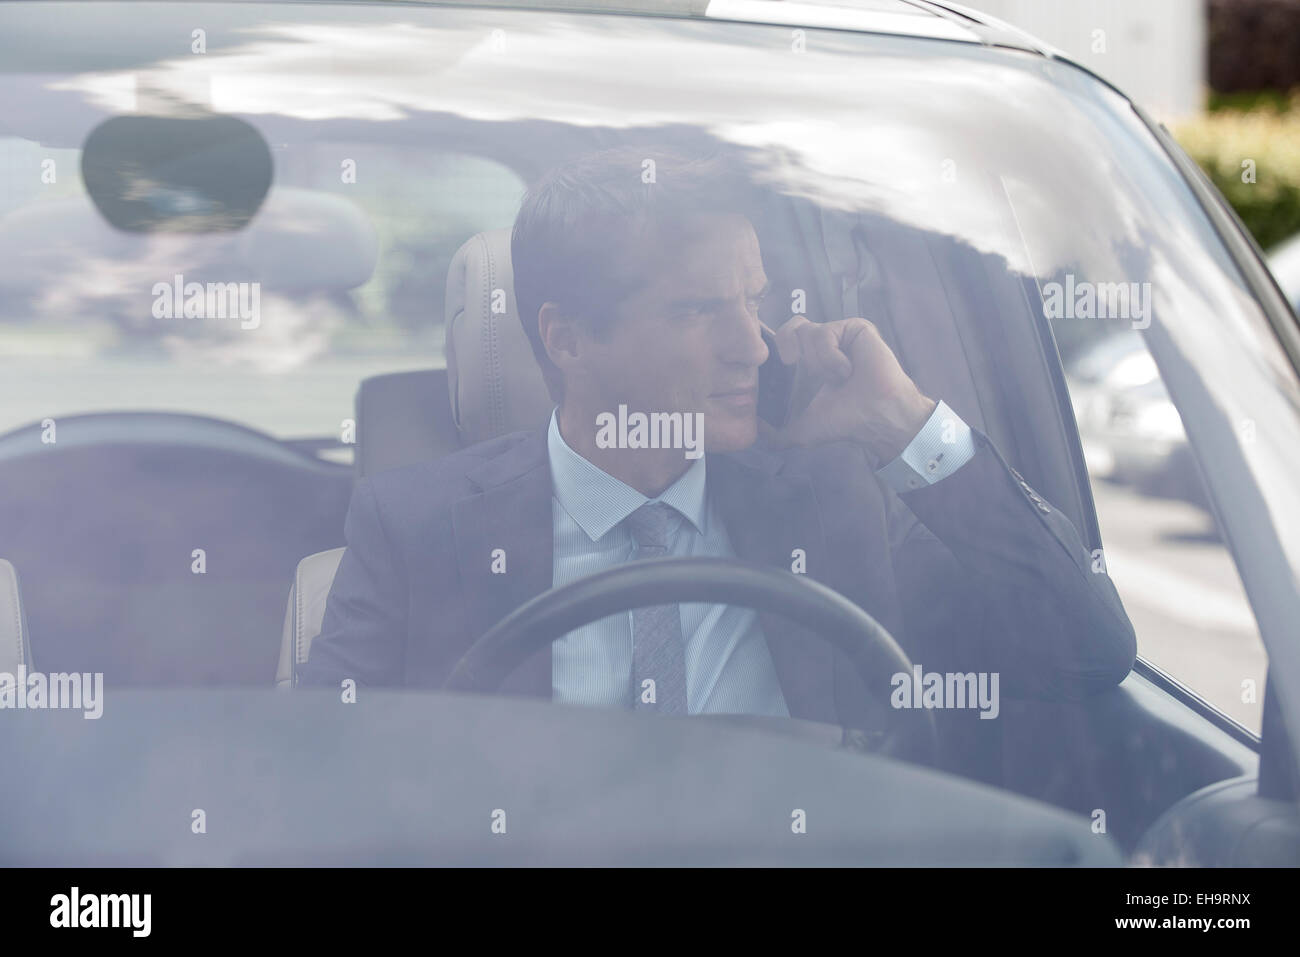 Businessman talking on cell phone in car - Stock Image